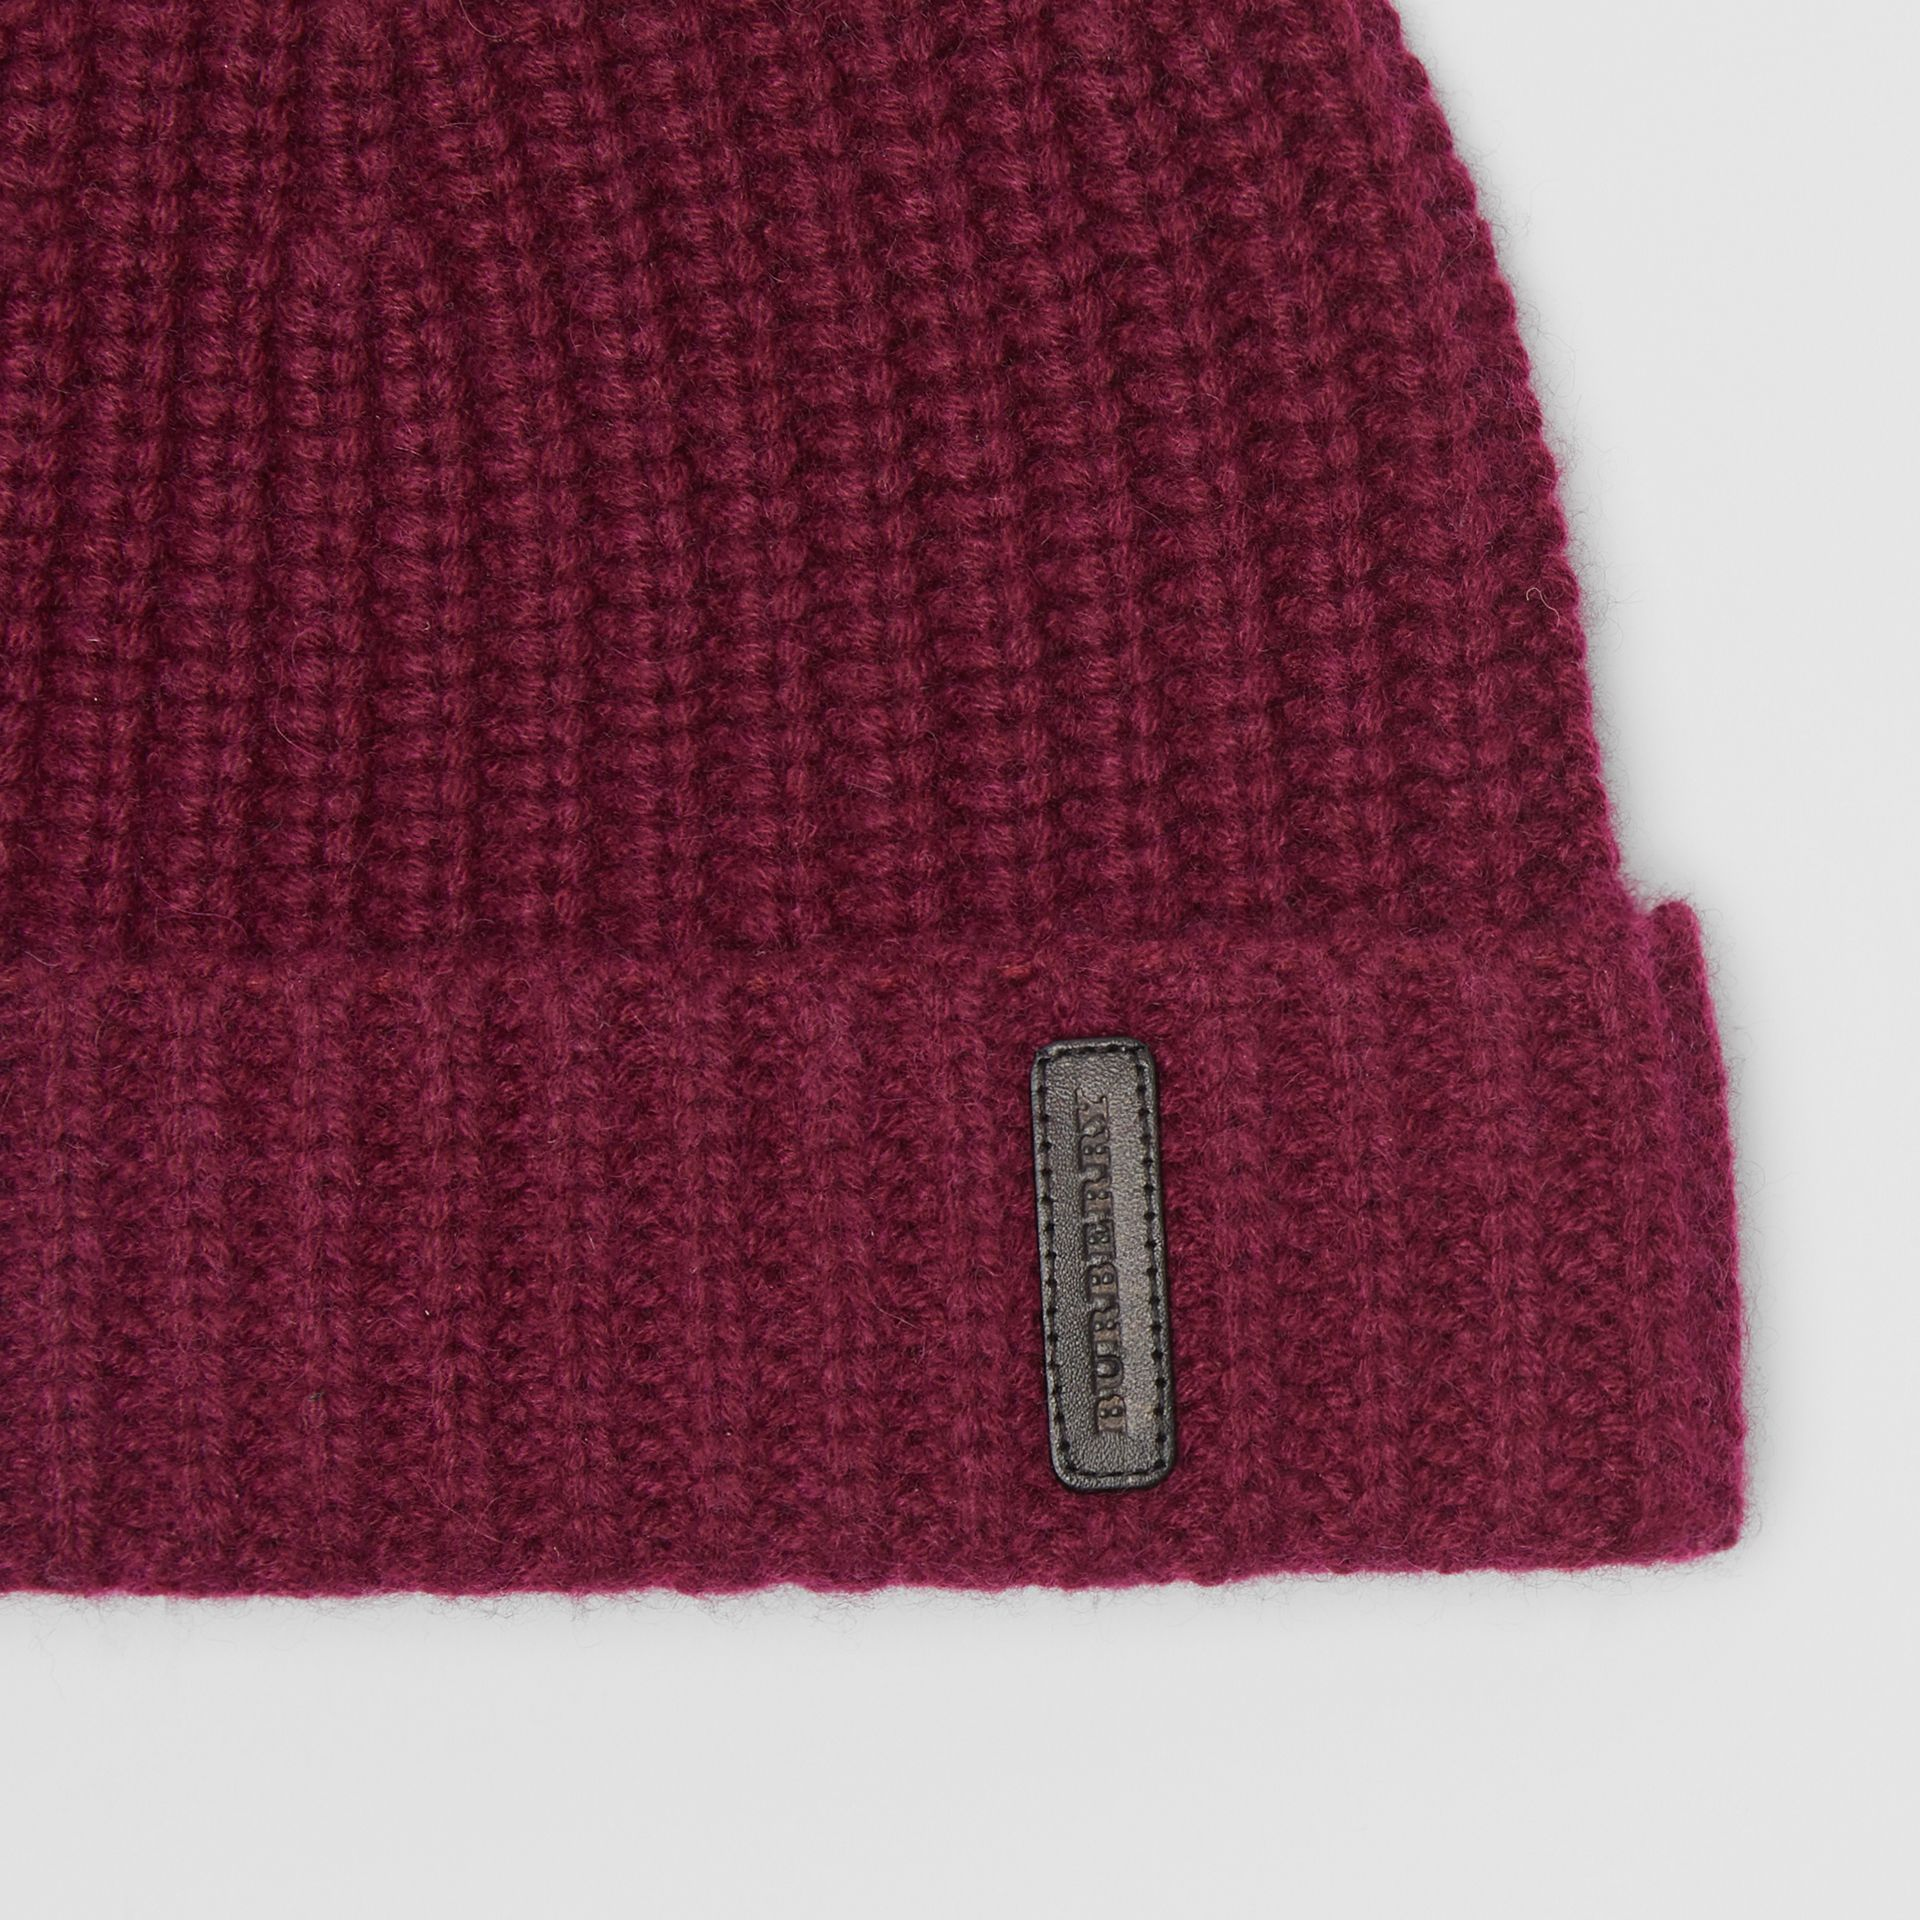 Rib Knit Cashmere Beanie in Dark Elderberry | Burberry - gallery image 1